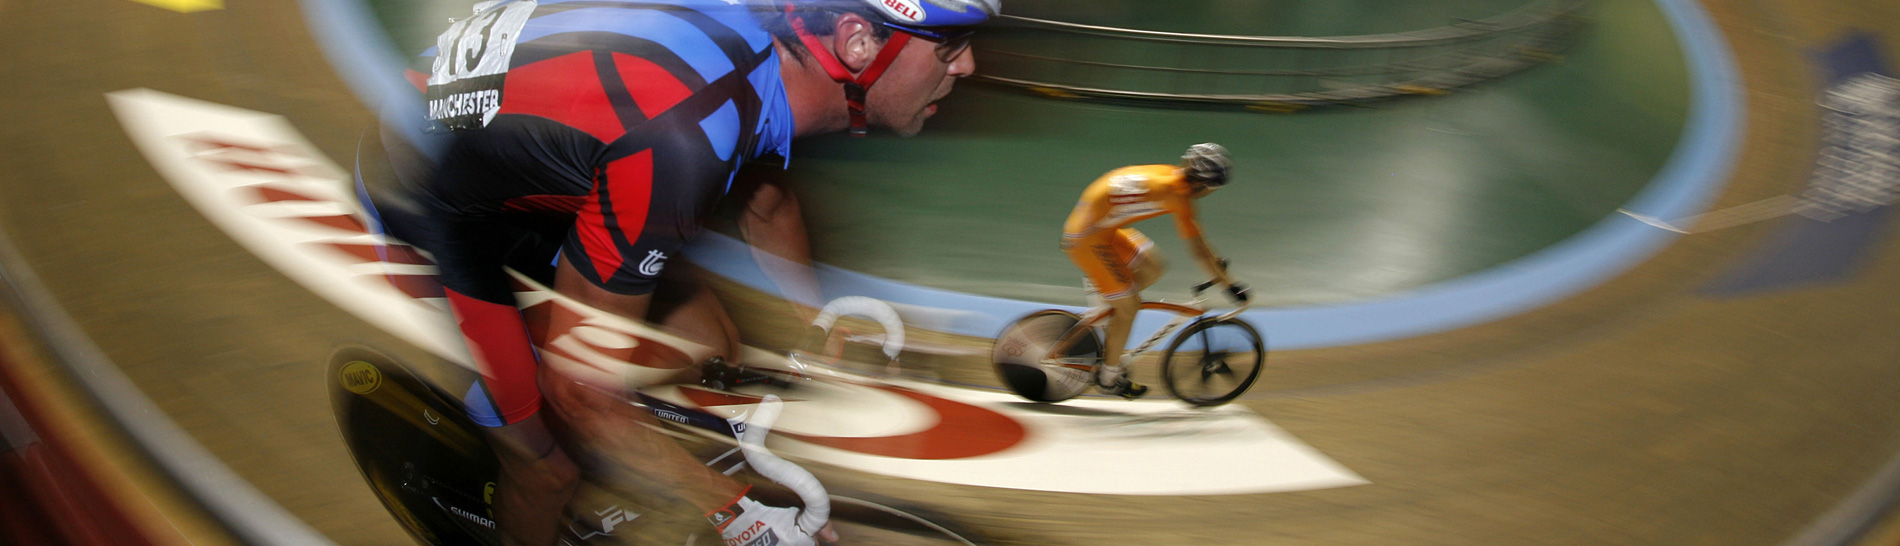 World Track Cycling Slideshow